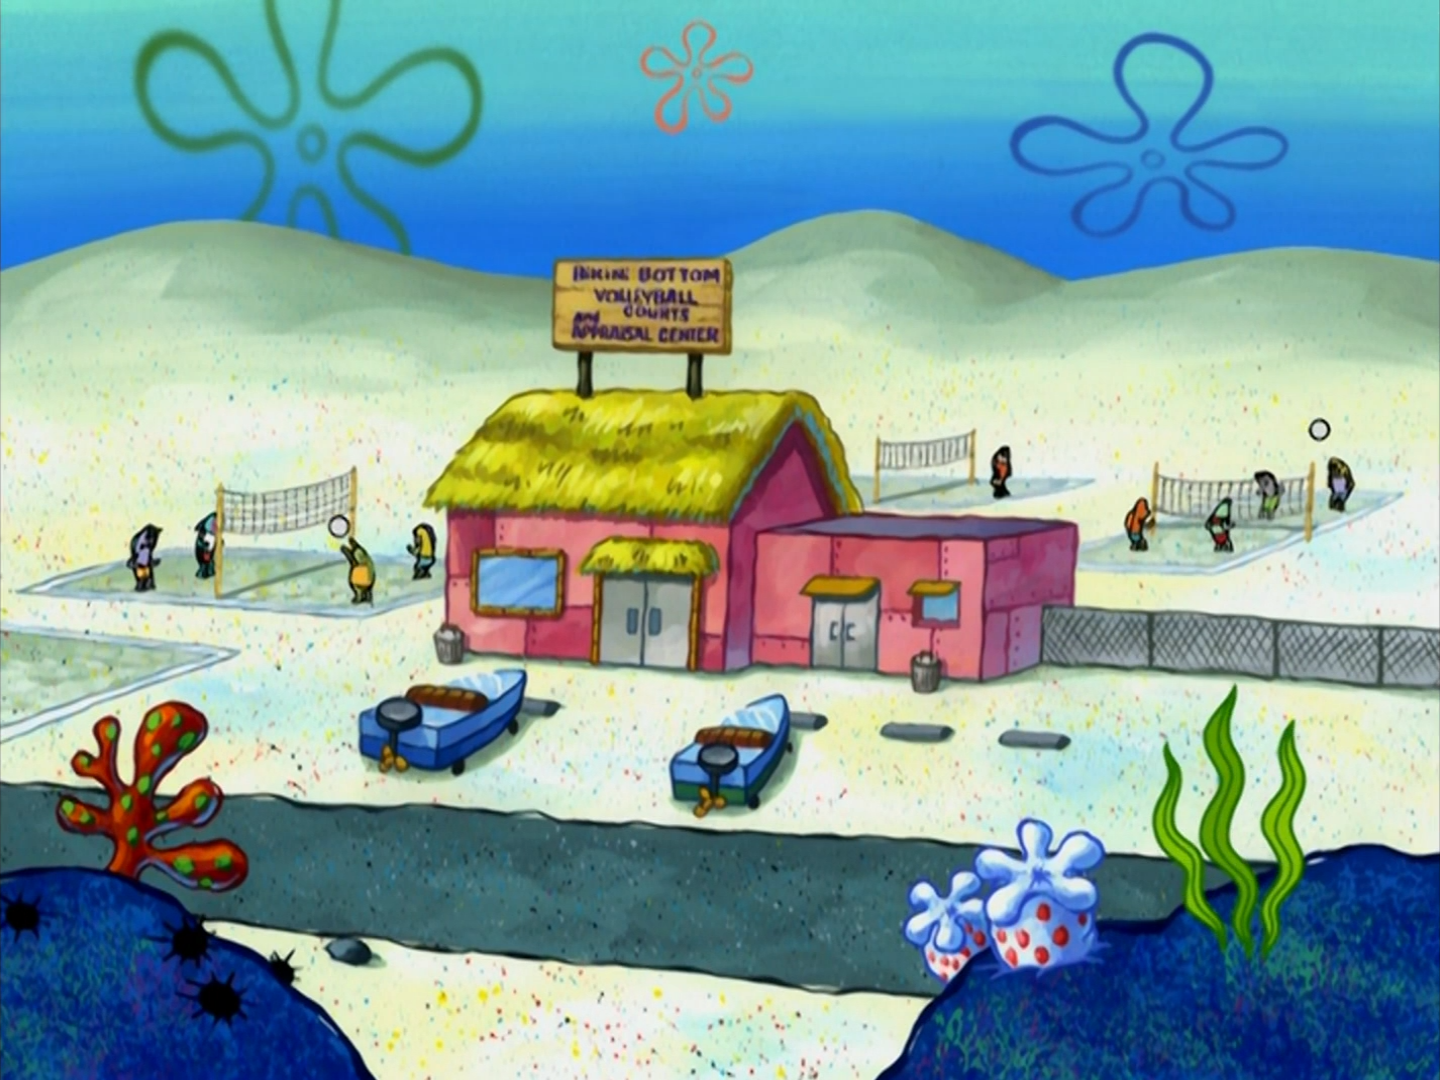 Bikini Bottom Volleyball Courts and Appraisal Center